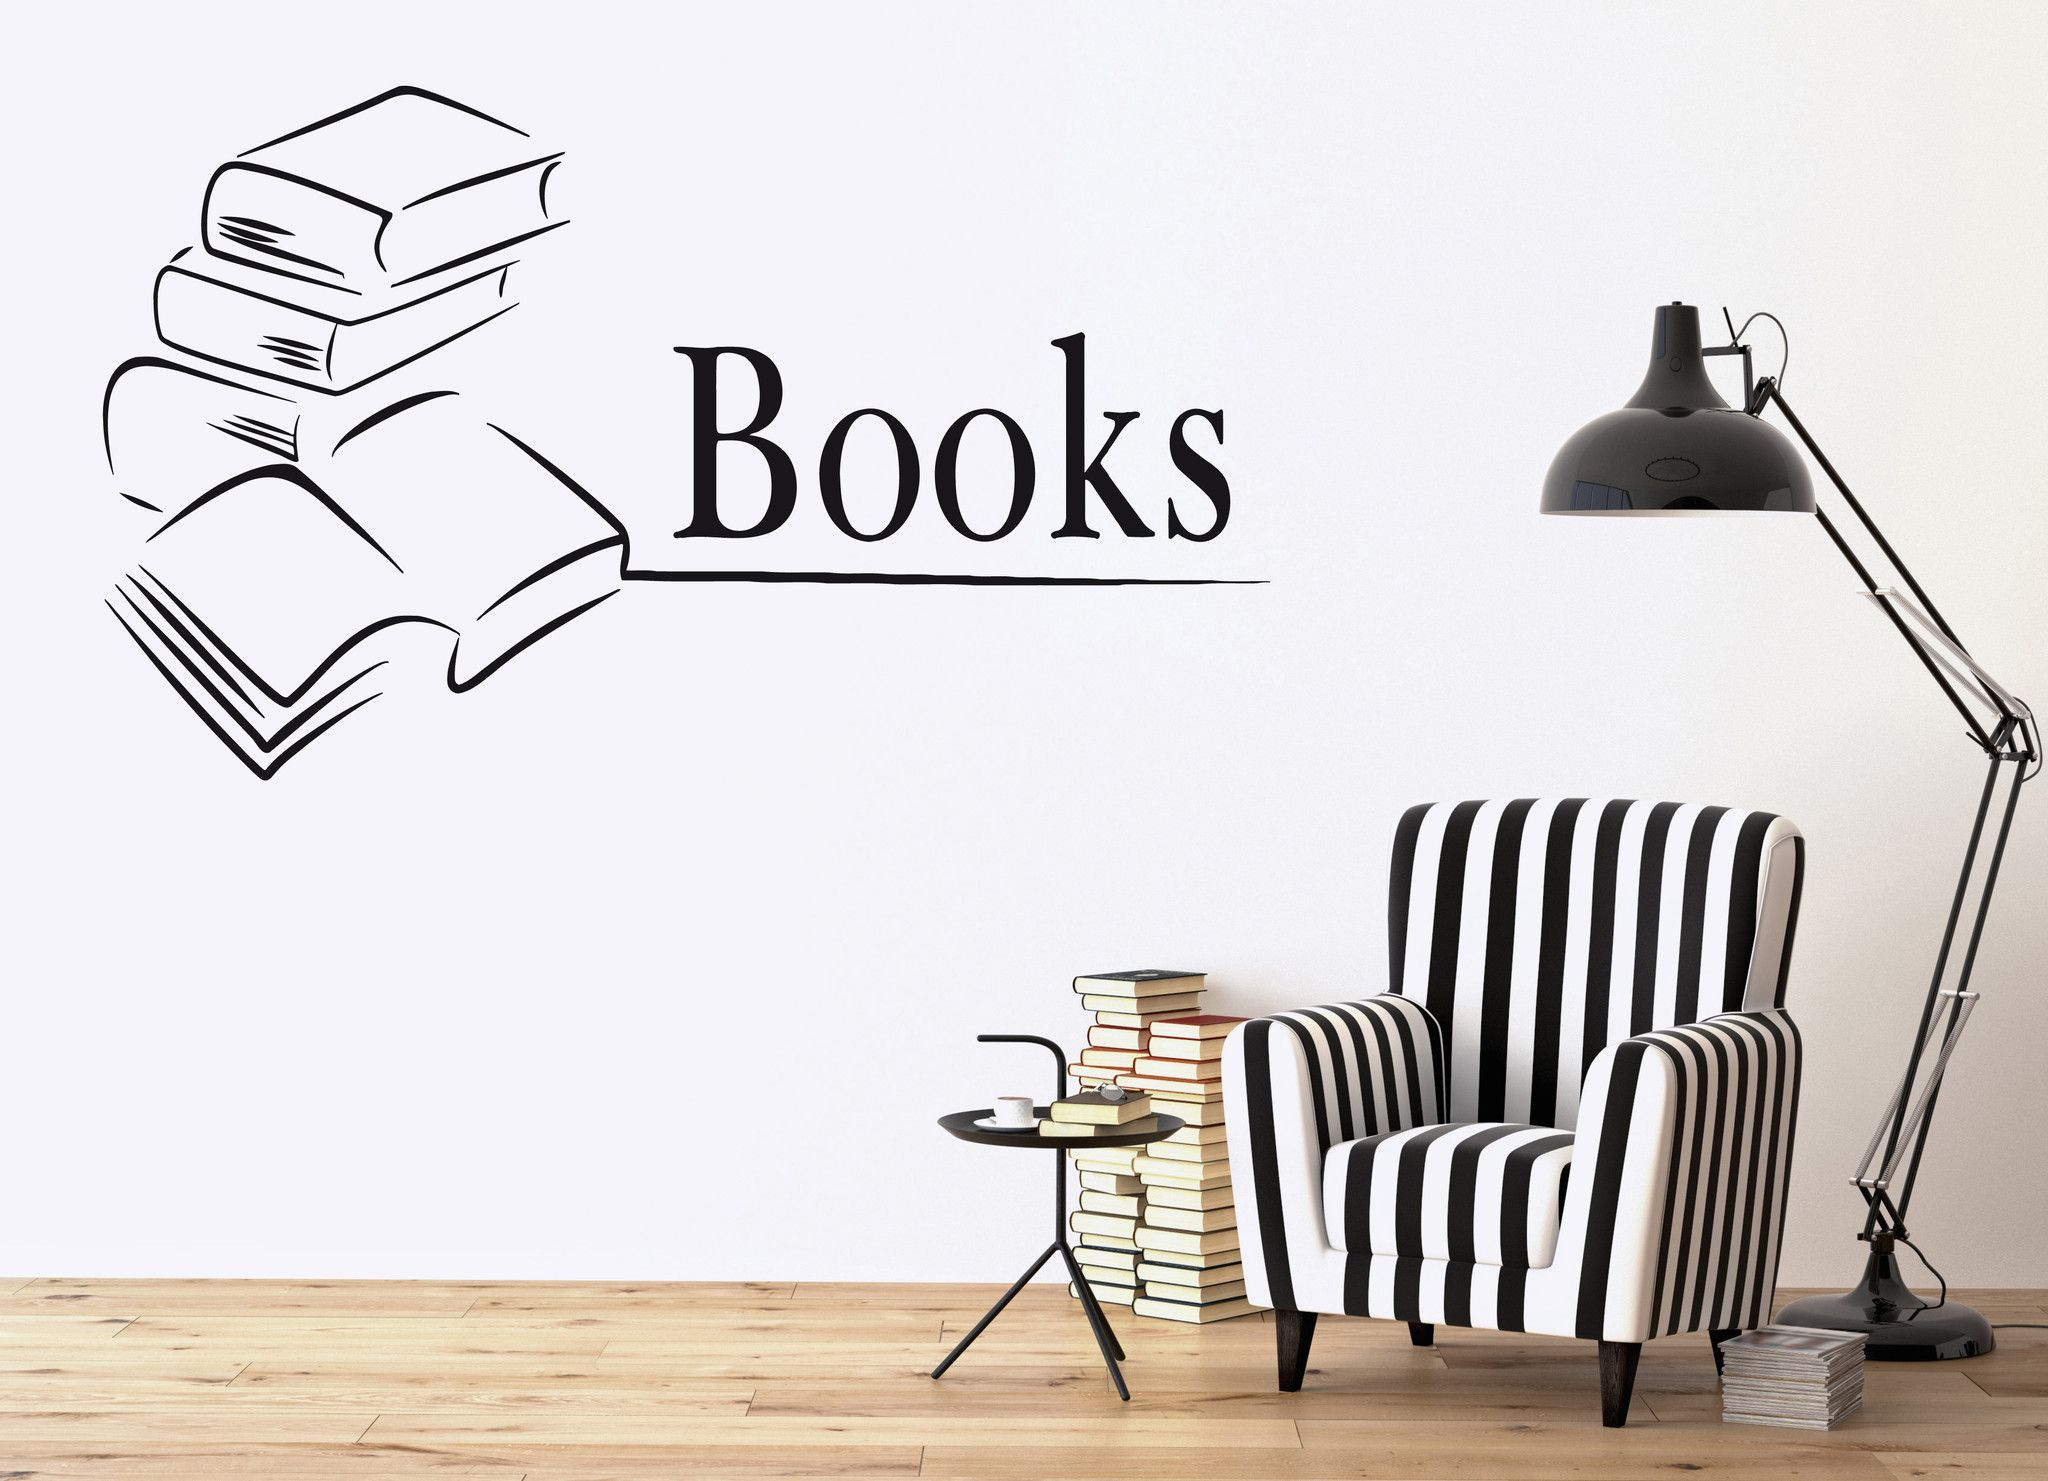 Vinyl Decal Books Library Bookstore Bookworm School Wall Stickers - How to make vinyl wall decals with cricut